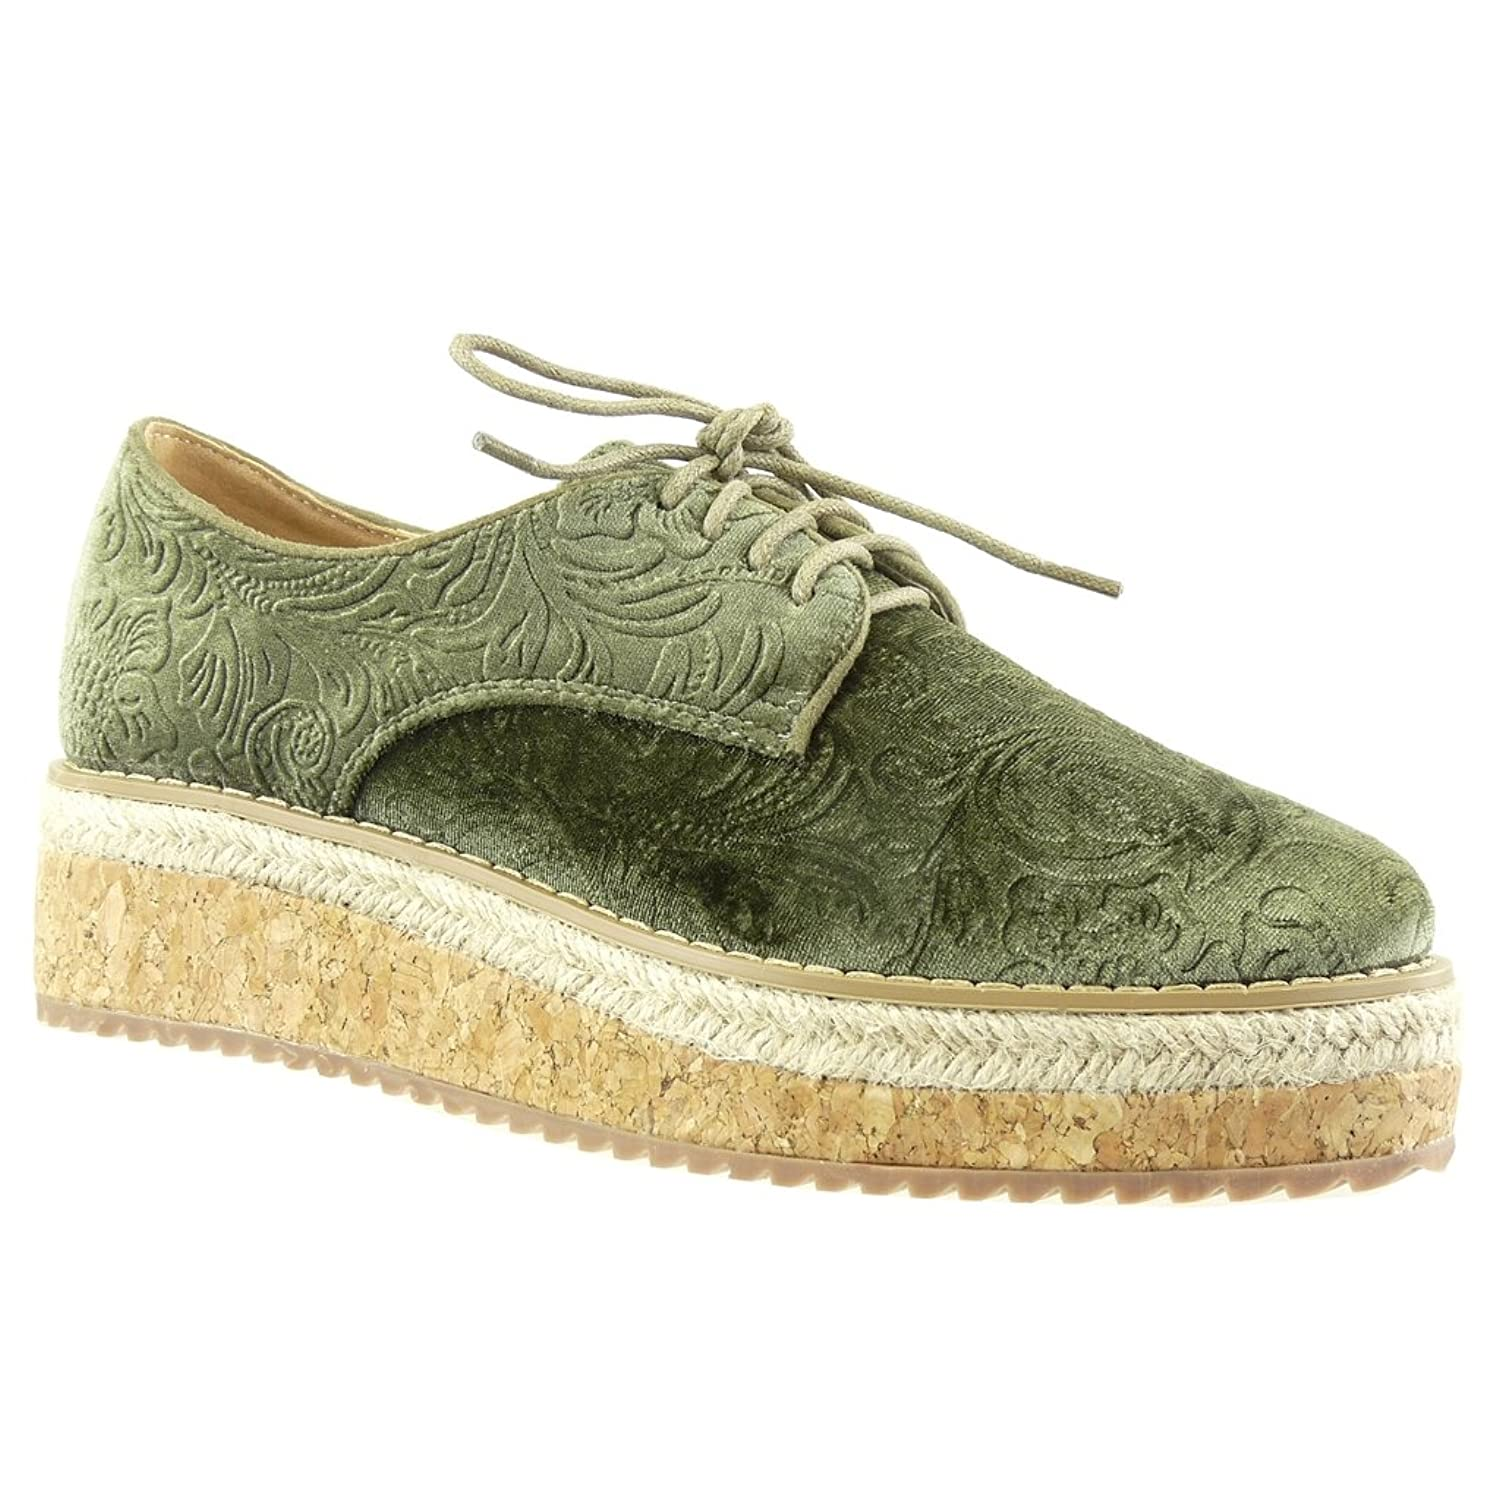 new Angkorly Chaussure Mode Derbies Espadrille plateforme